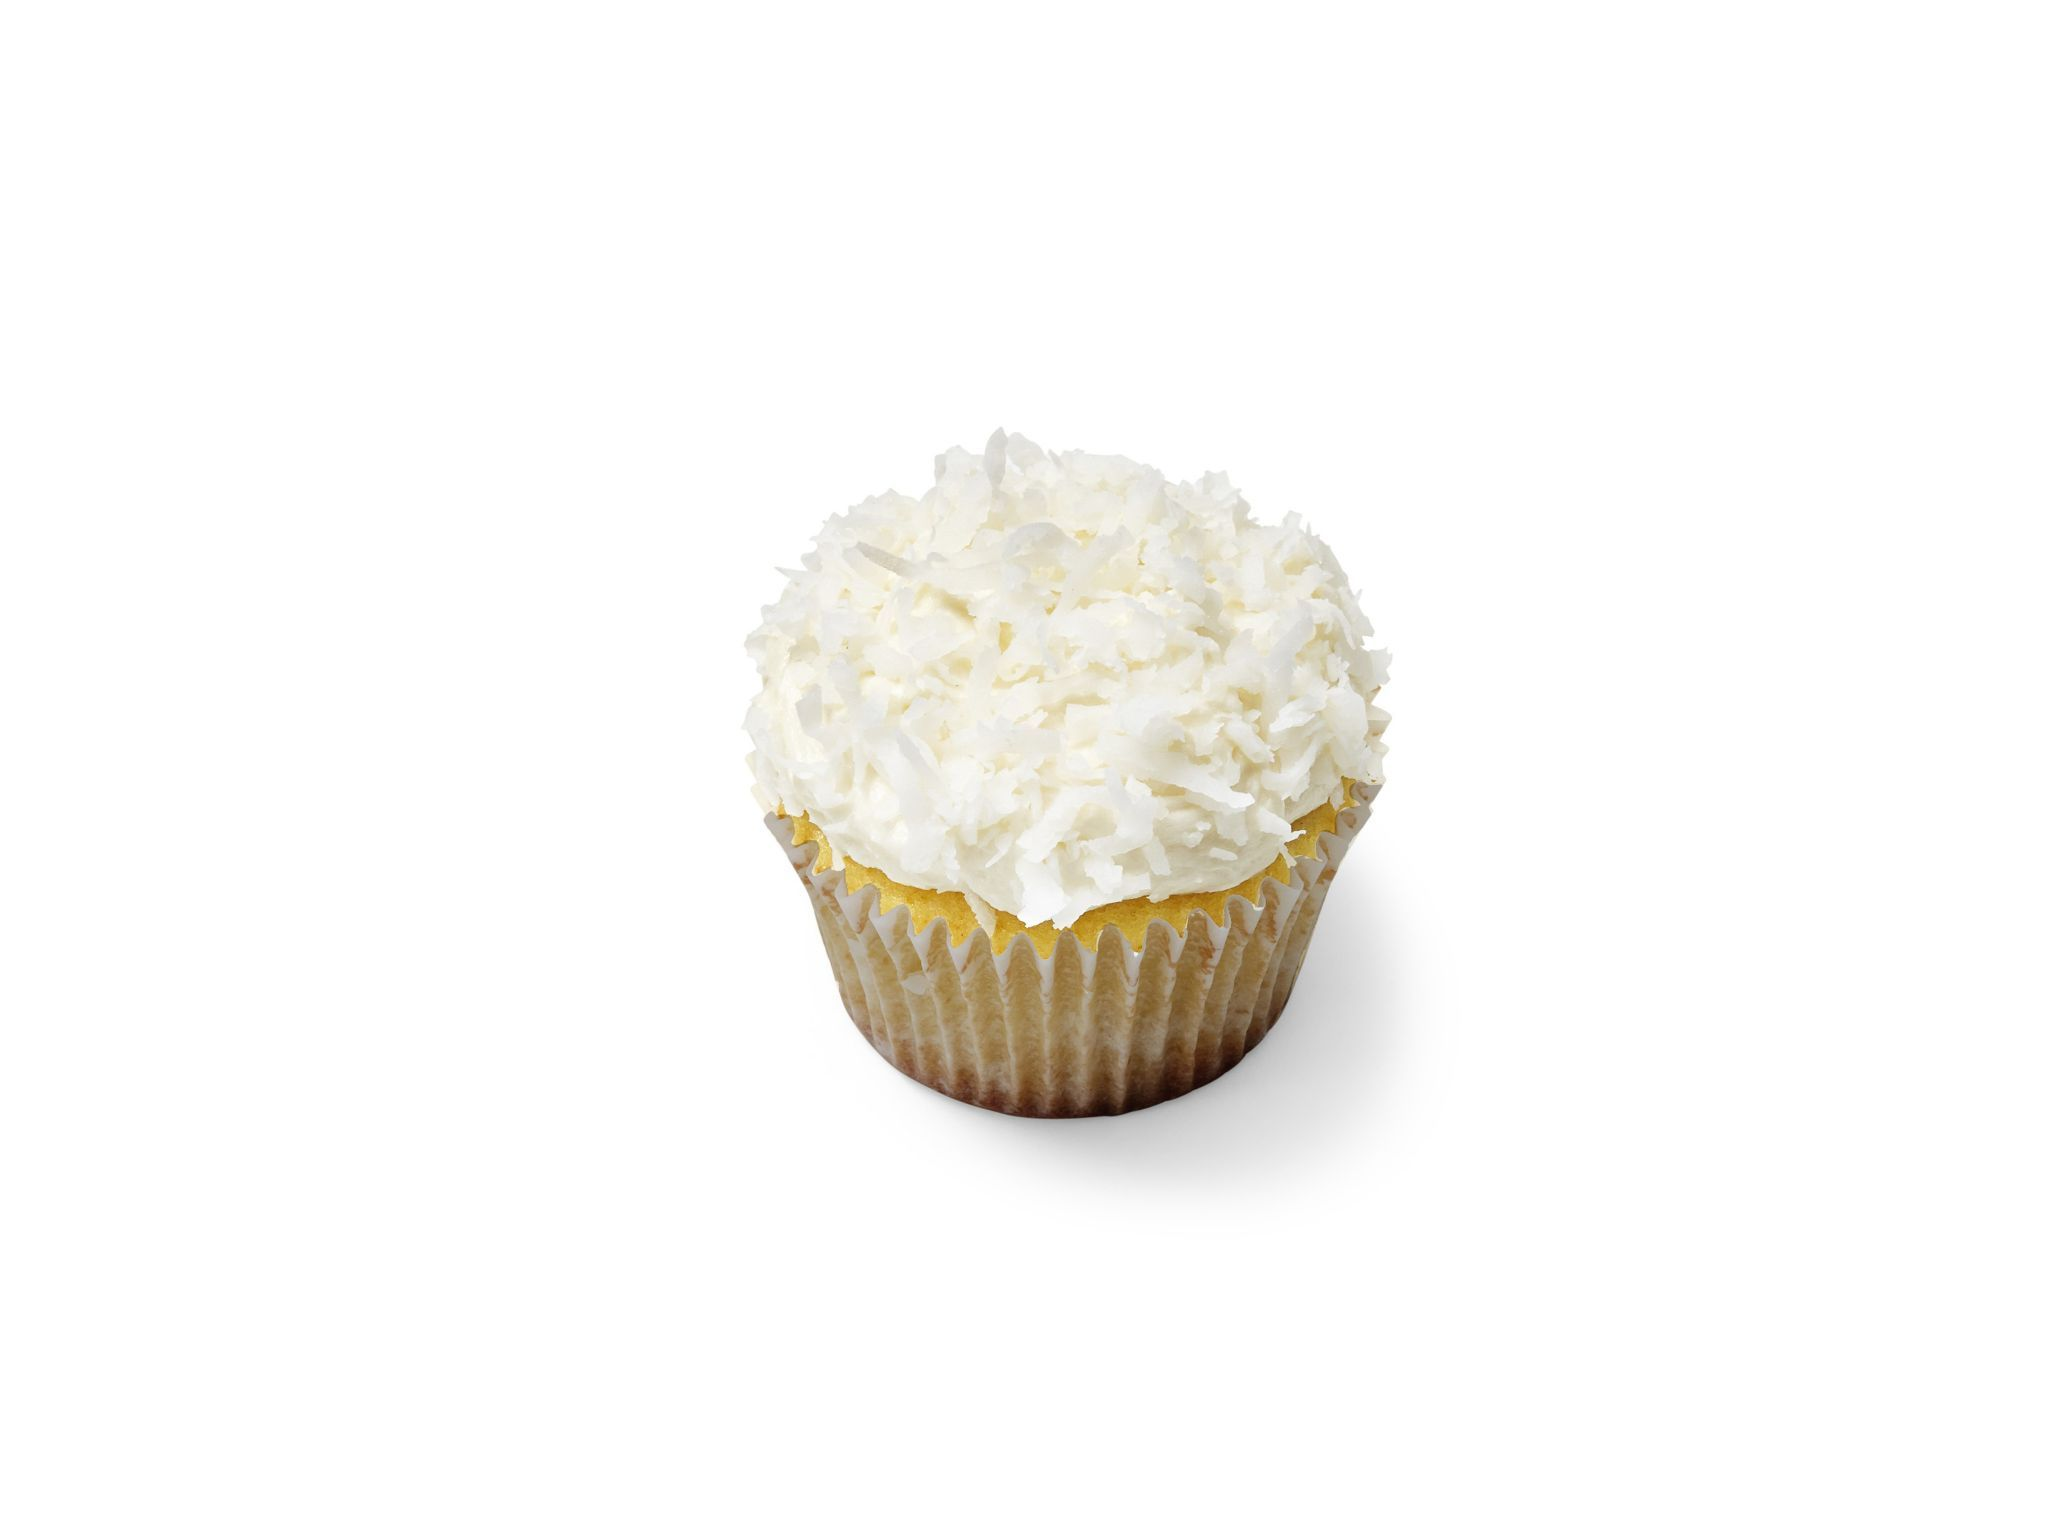 Coconut–White Chocolate (No. 13) : Make Vanilla Cupcakes, replacing the milk with unsweetened coconut milk; fold 1/2 cup white chocolate chips into the batter and bake in nonstick liners. Make Vanilla Frosting, replacing the milk with unsweetened coconut milk. Frost the cupcakes and top with shredded coconut.